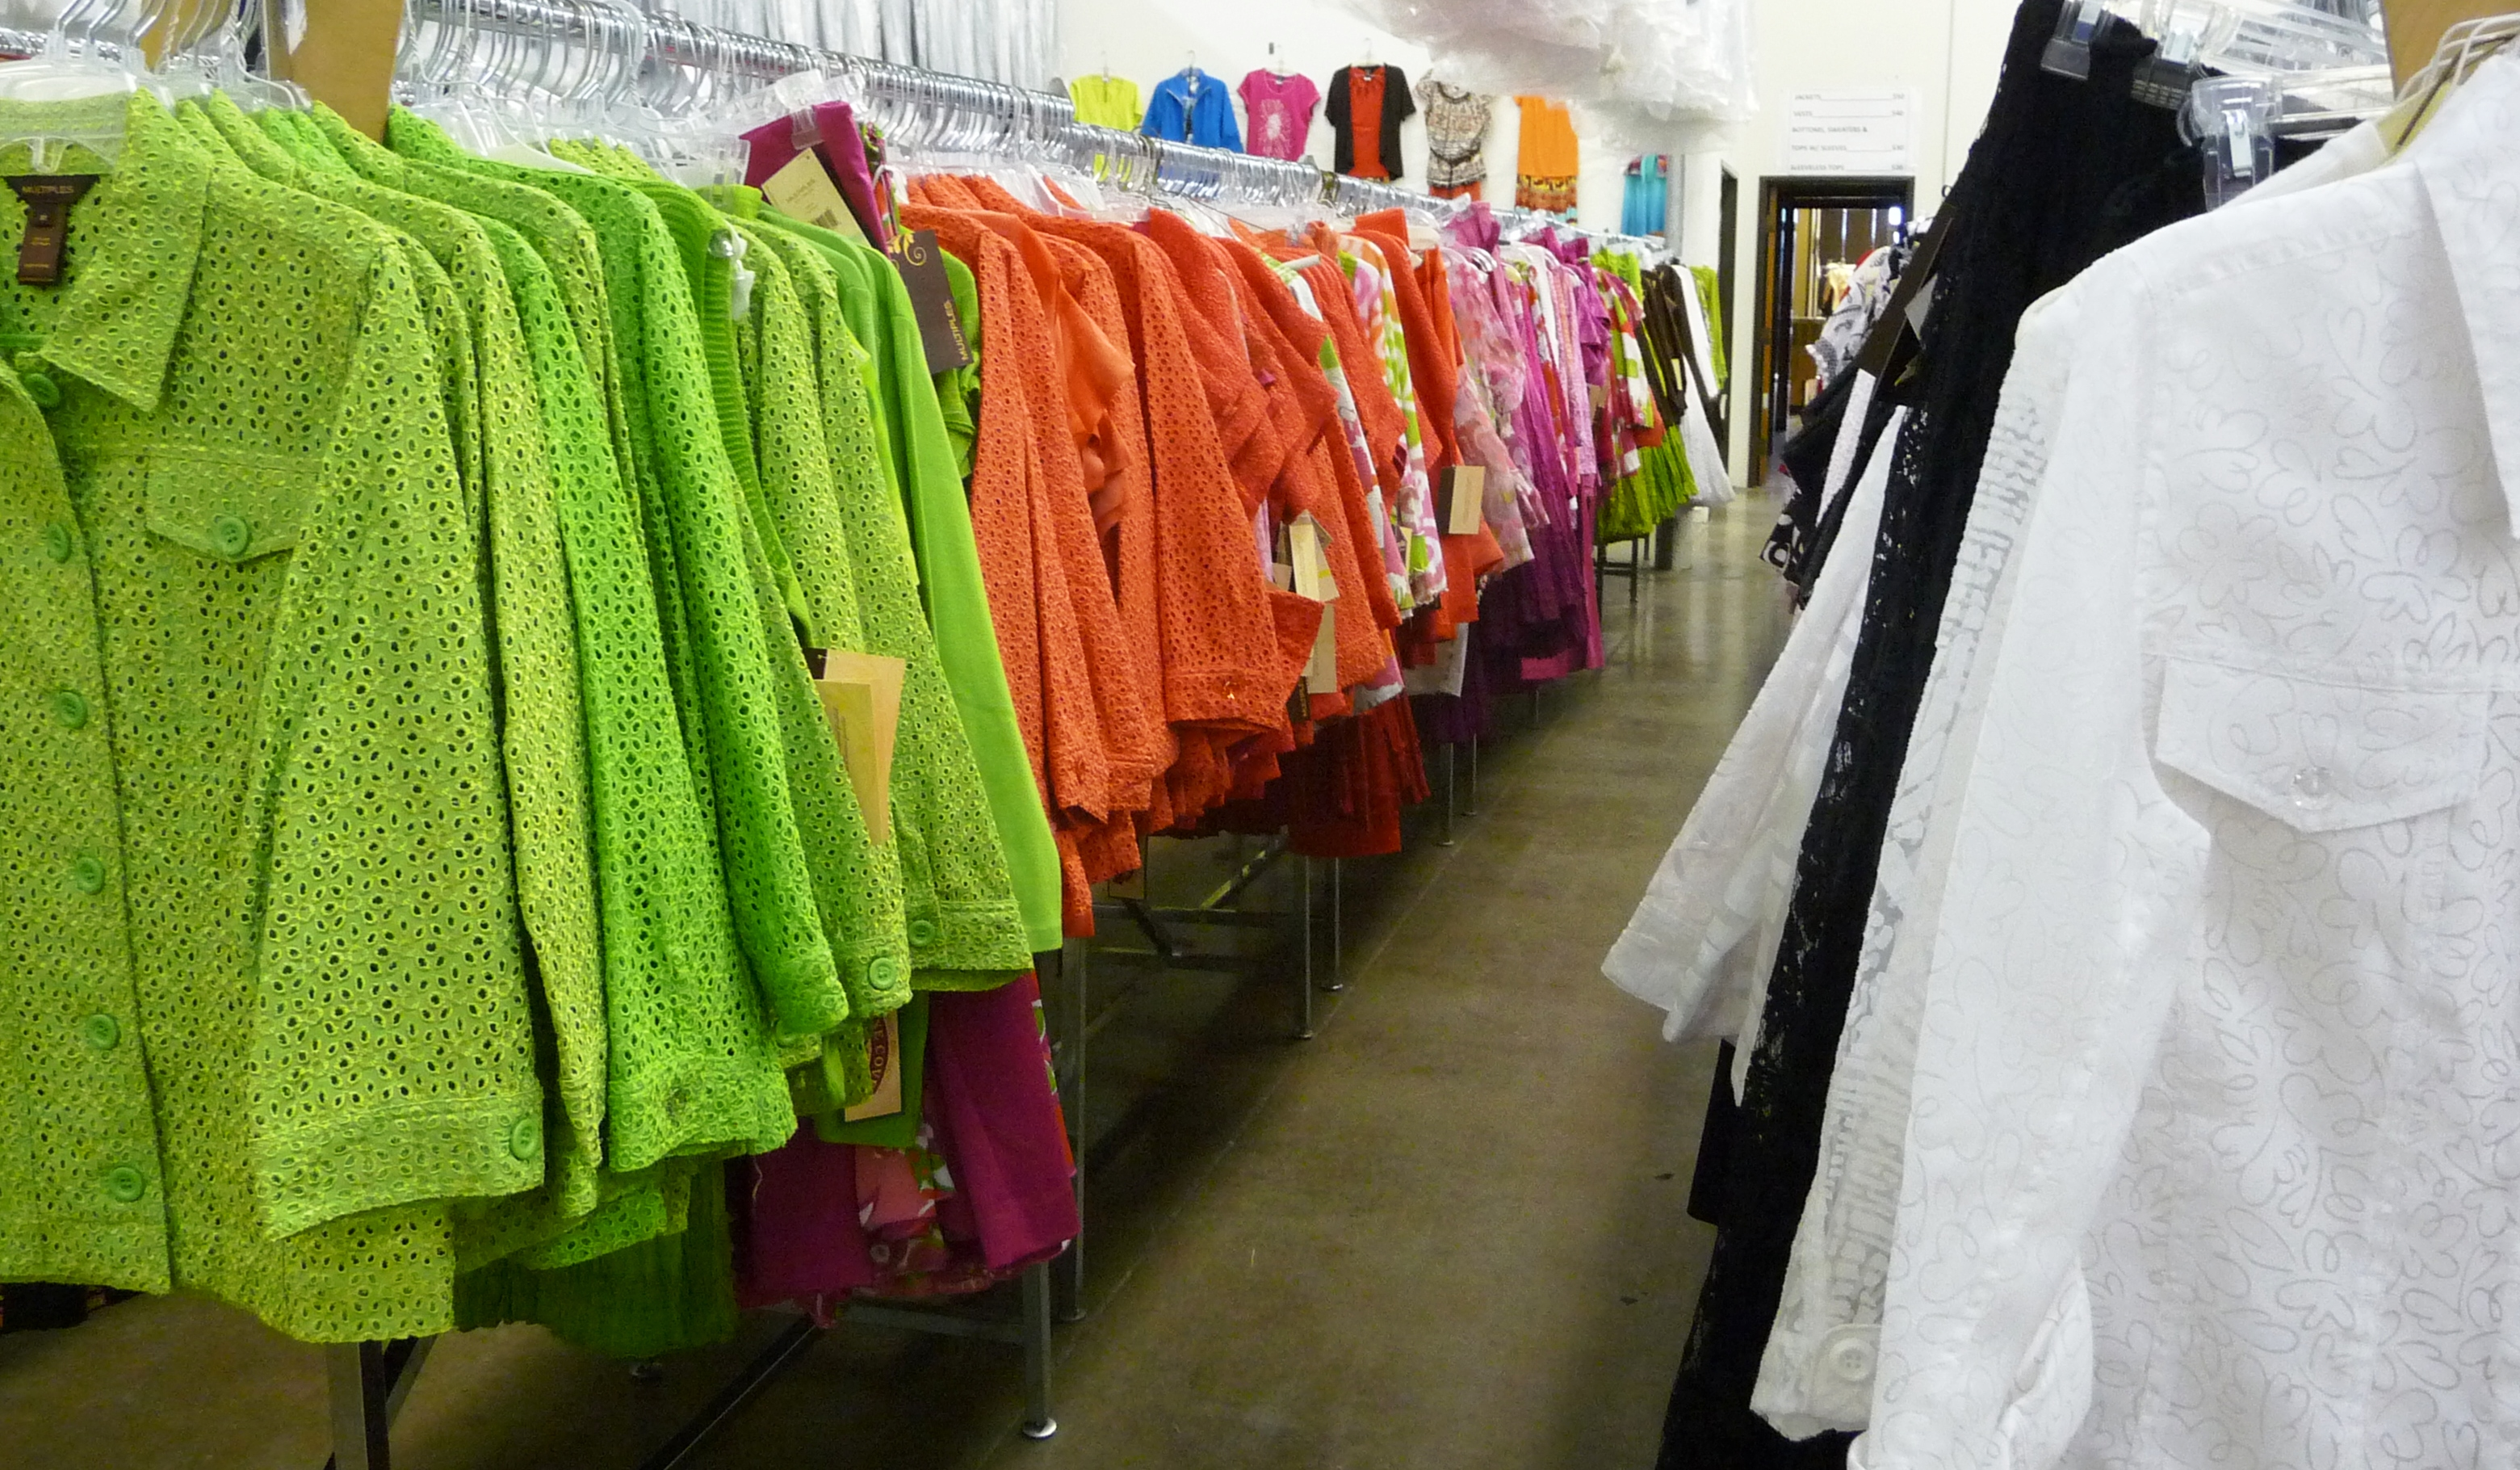 New Sneak Preview For Sharon Young Ladies Designer Clothes Warehouse Sale Reminder Starts Tomorrow August 5 7 Frugal In Fort Worth Blog Coupon Savings Personal Budget Tips Cheap Dfw Deals